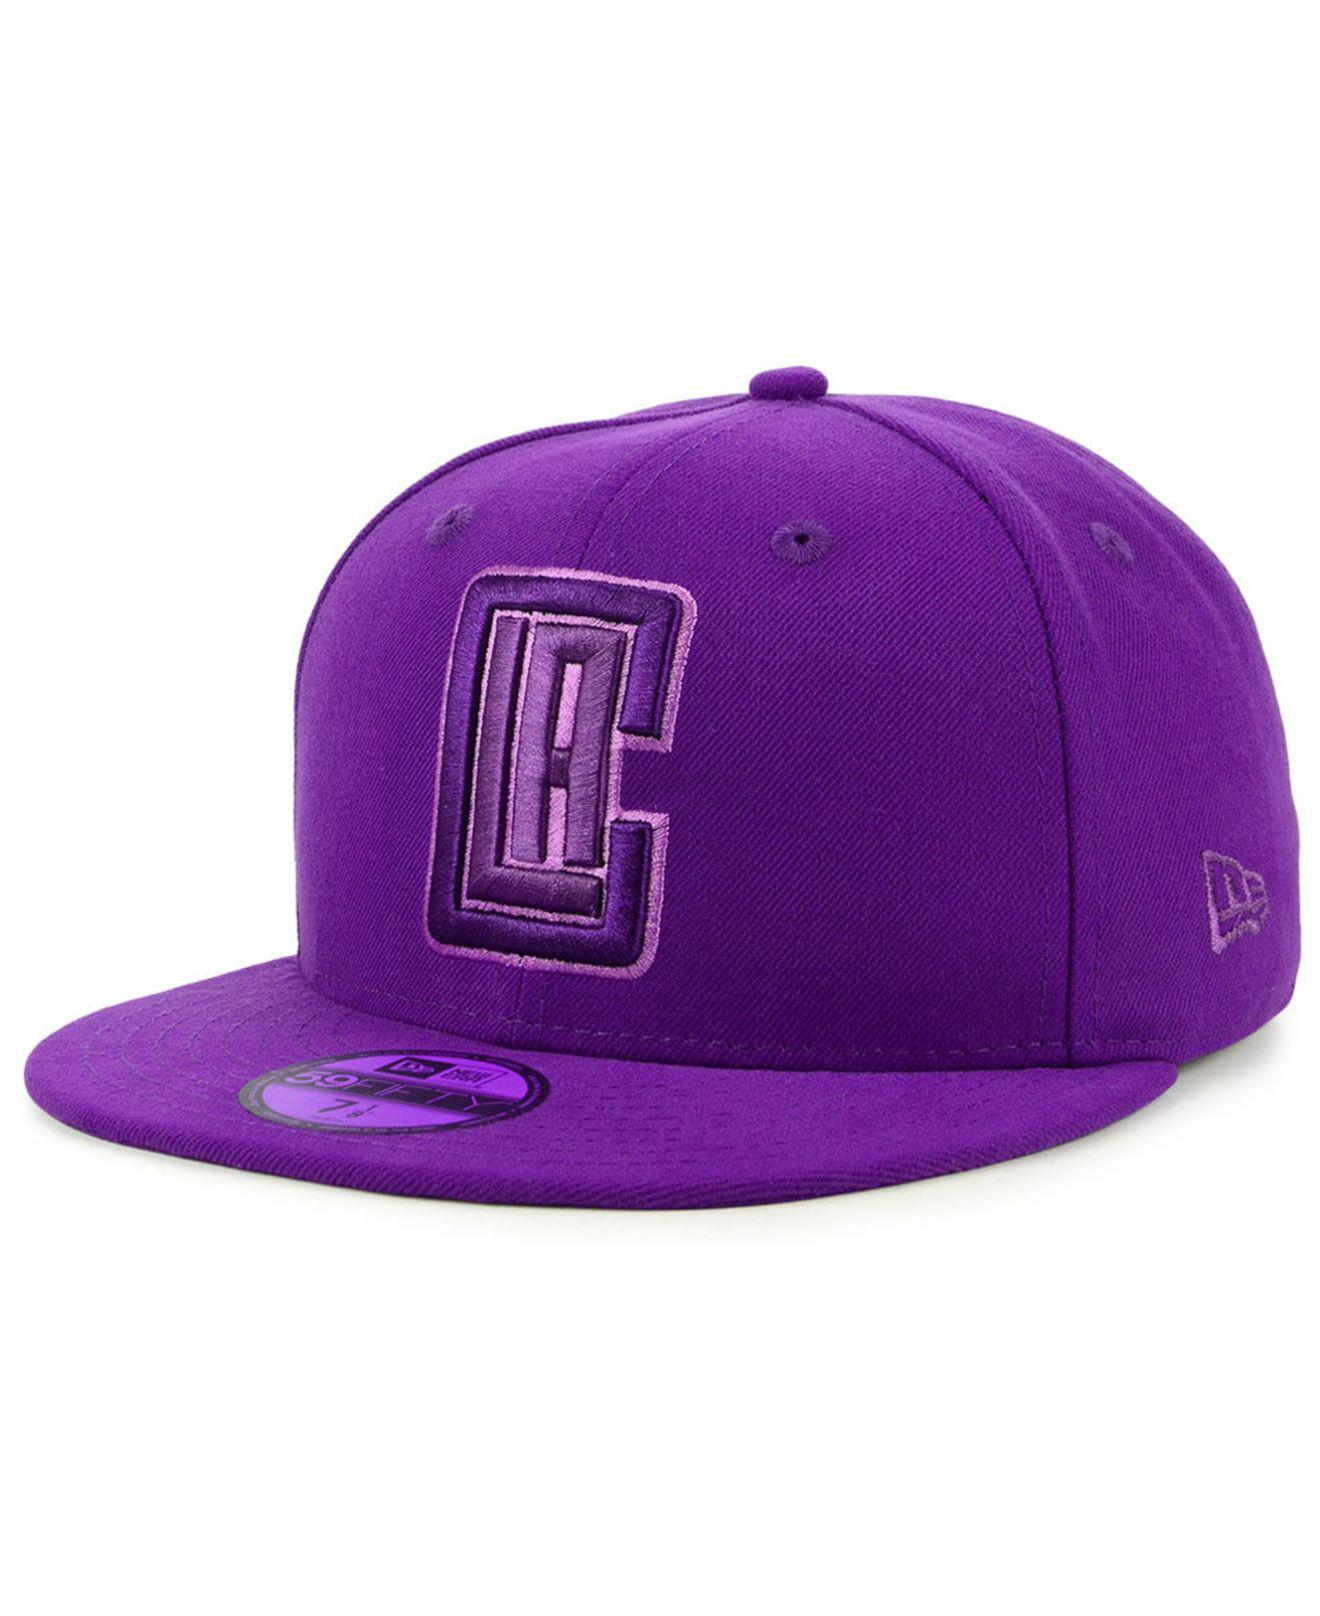 sports shoes afed3 3a2bc KTZ. Men s Purple Los Angeles Clippers Color Prism Pack 59fifty Fitted Cap